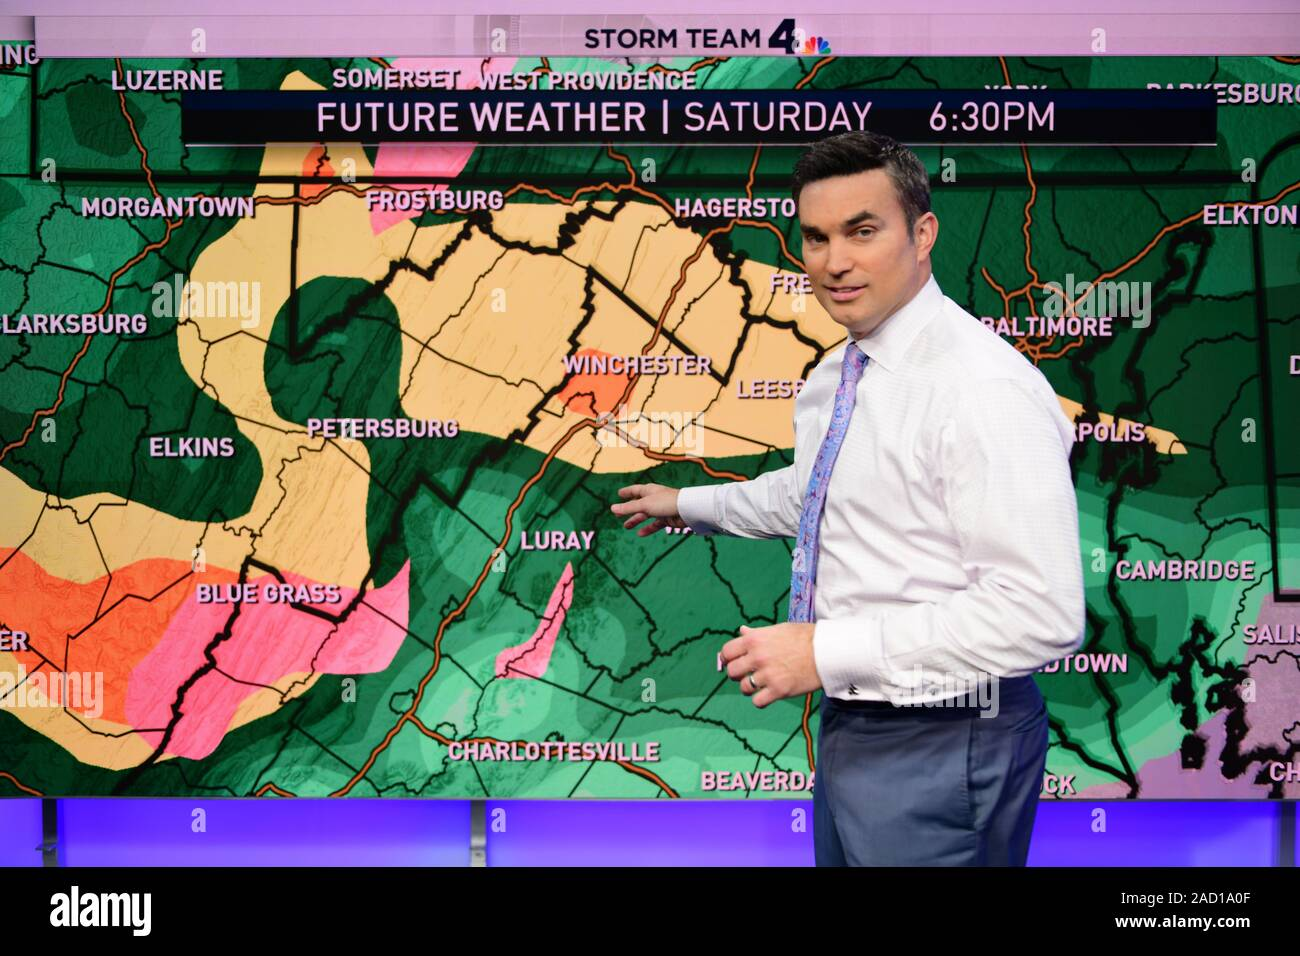 Meteorologist working on a weather forecast prediction for a Washington DC television station Stock Photo